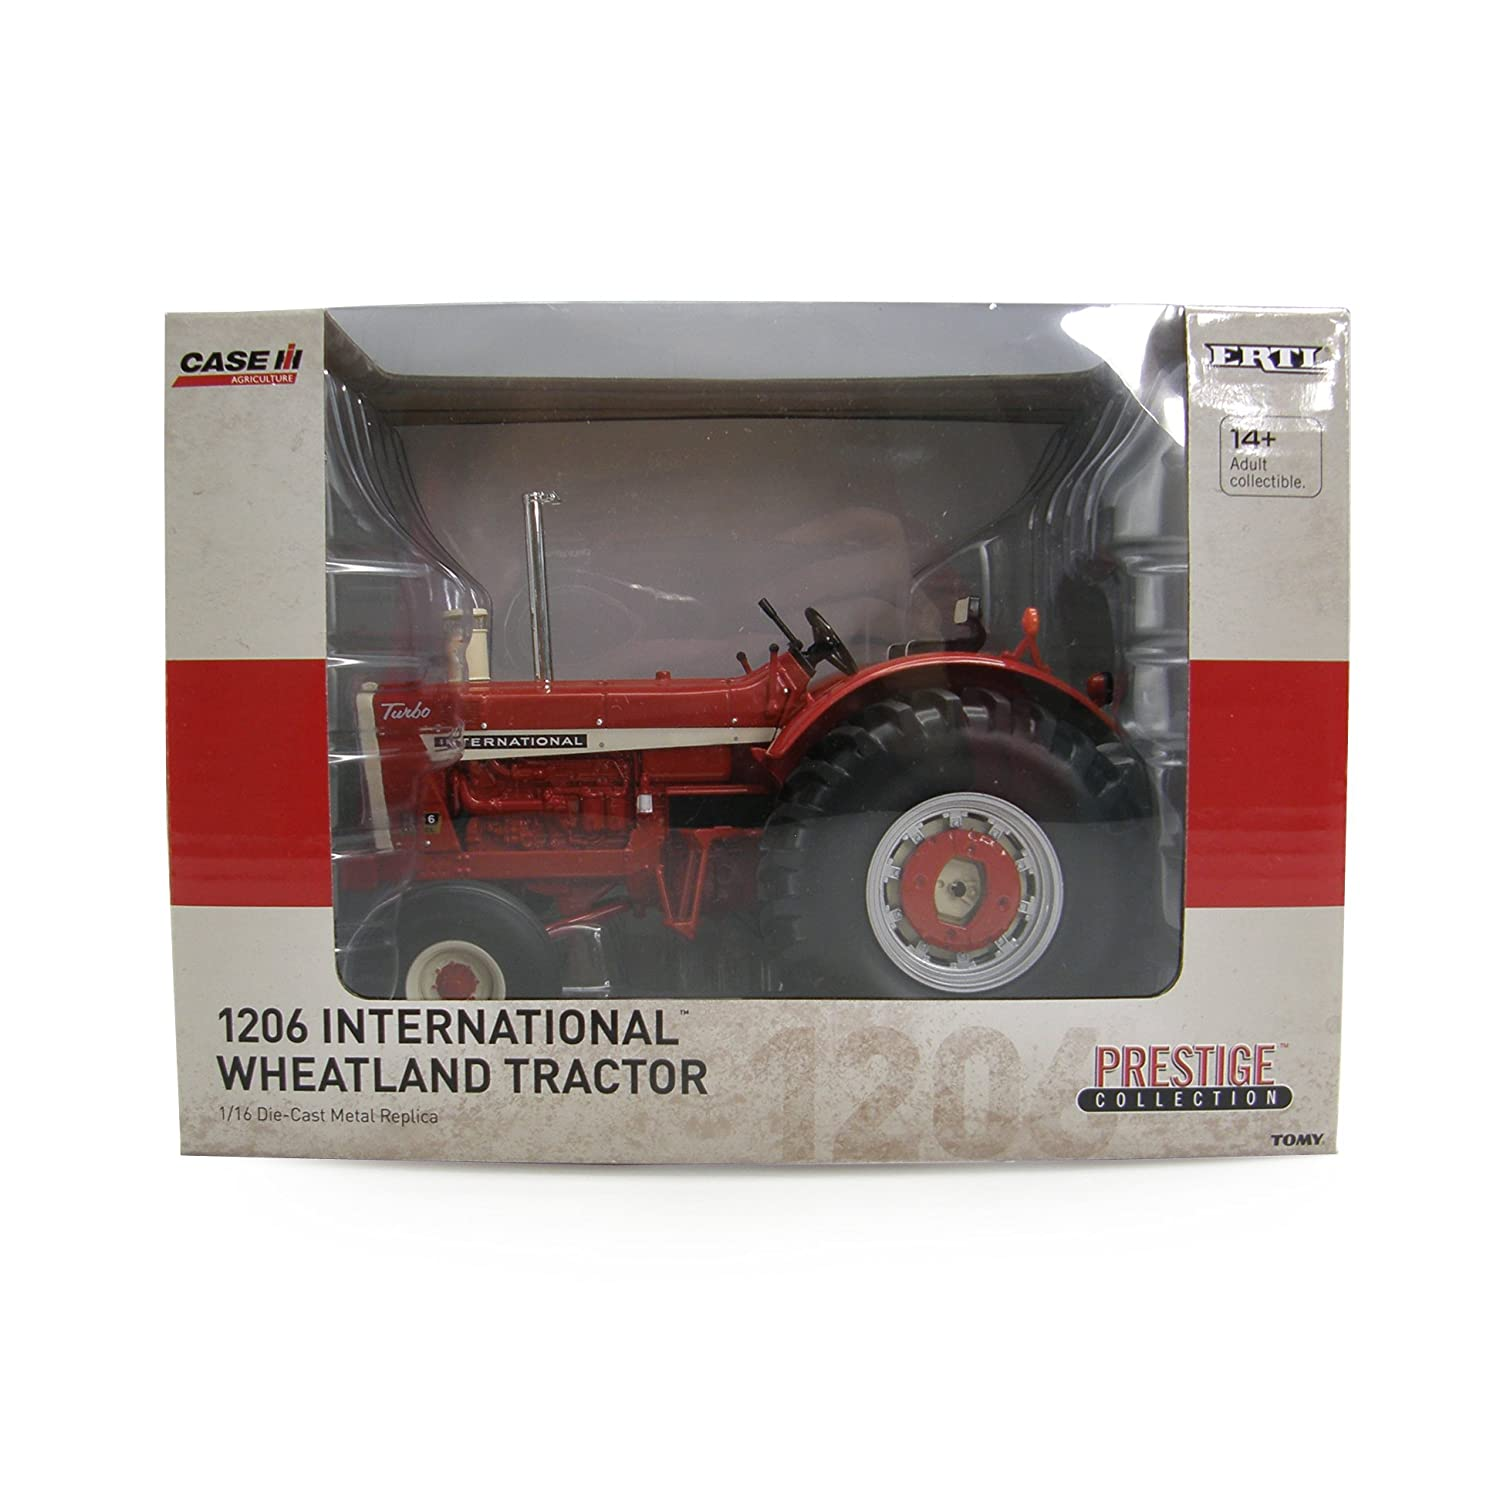 Amazon.com: Ertl Collectibles International 1206 Wheatland Tractor: Toys & Games